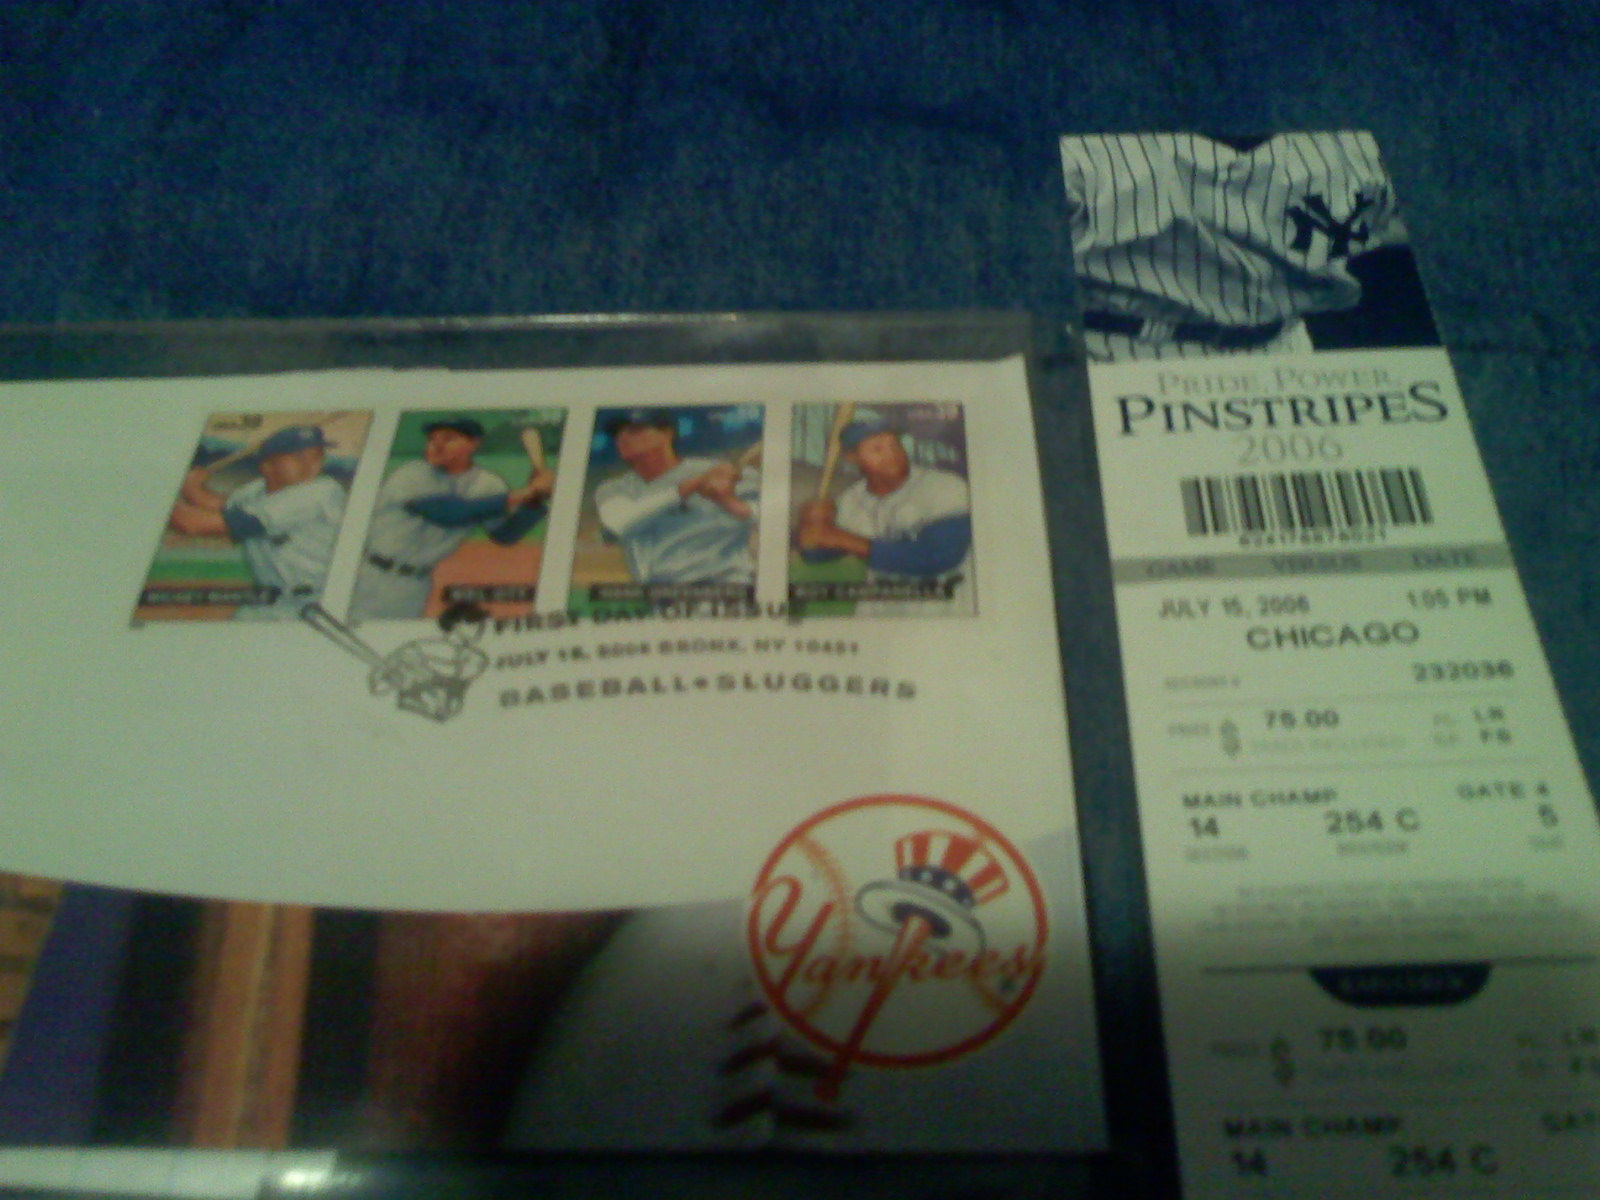 These were the stadium giveaway stamps we received.